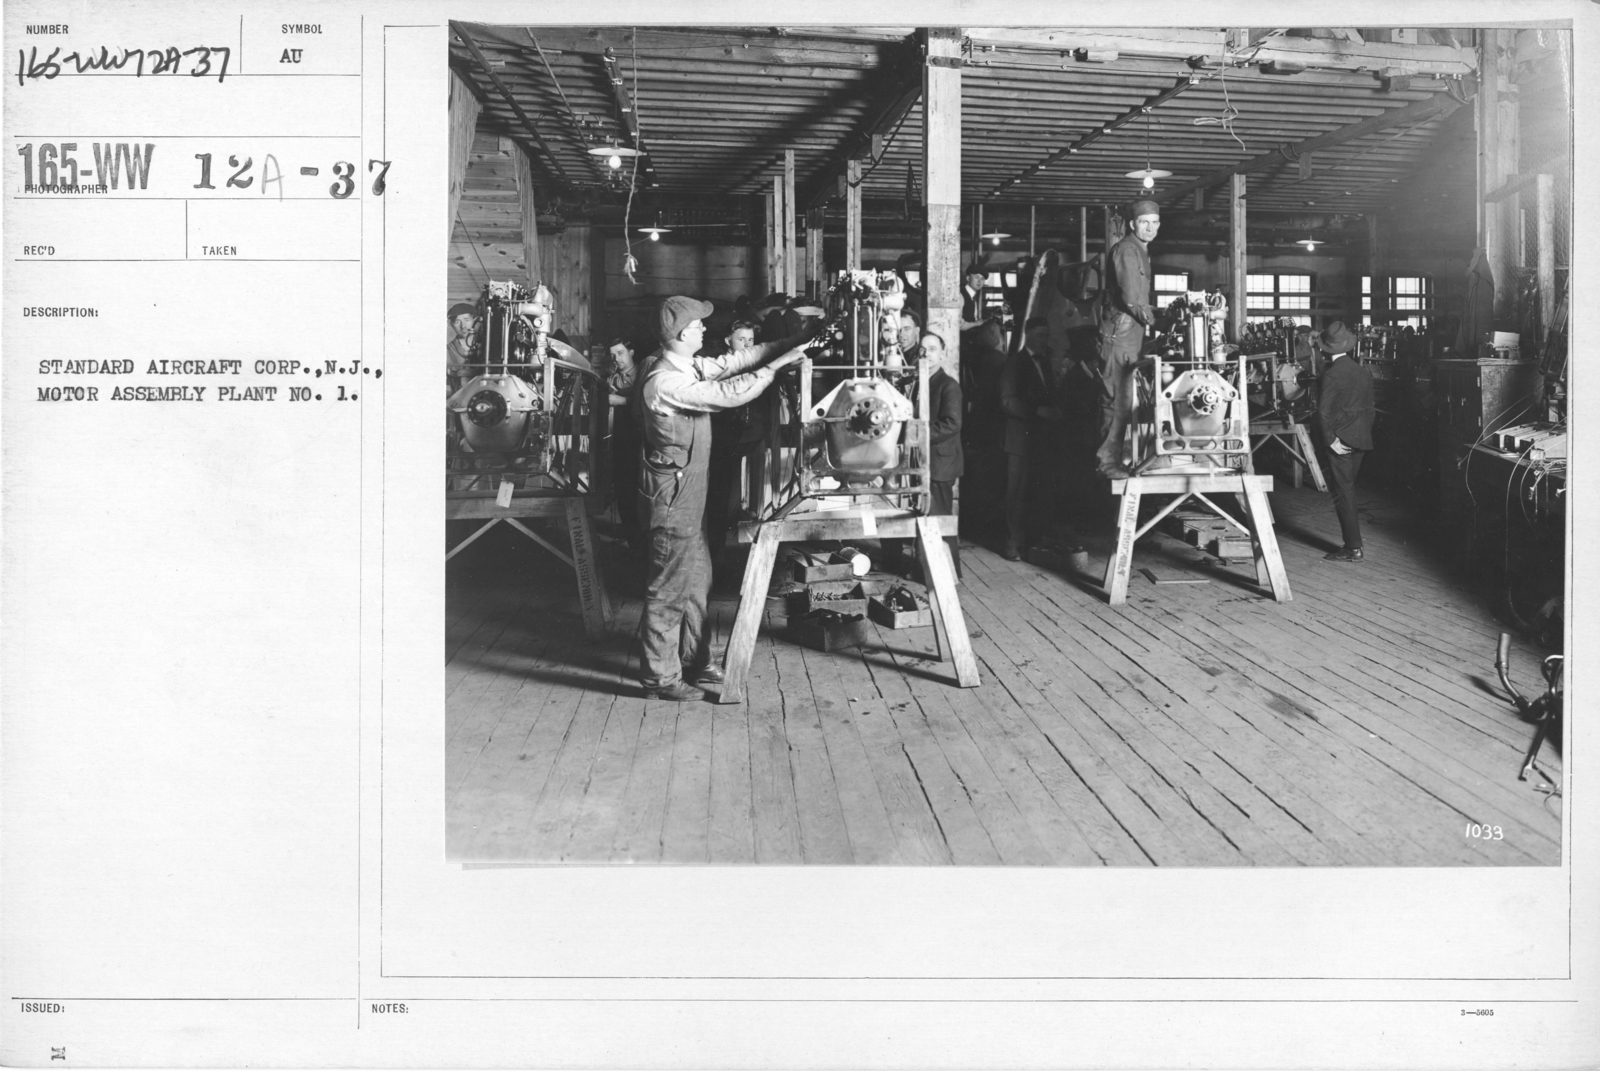 Airplanes - Manufacturing Plants - Standard Aircraft Corp., N.J., Motor Assembly Plant No. 1